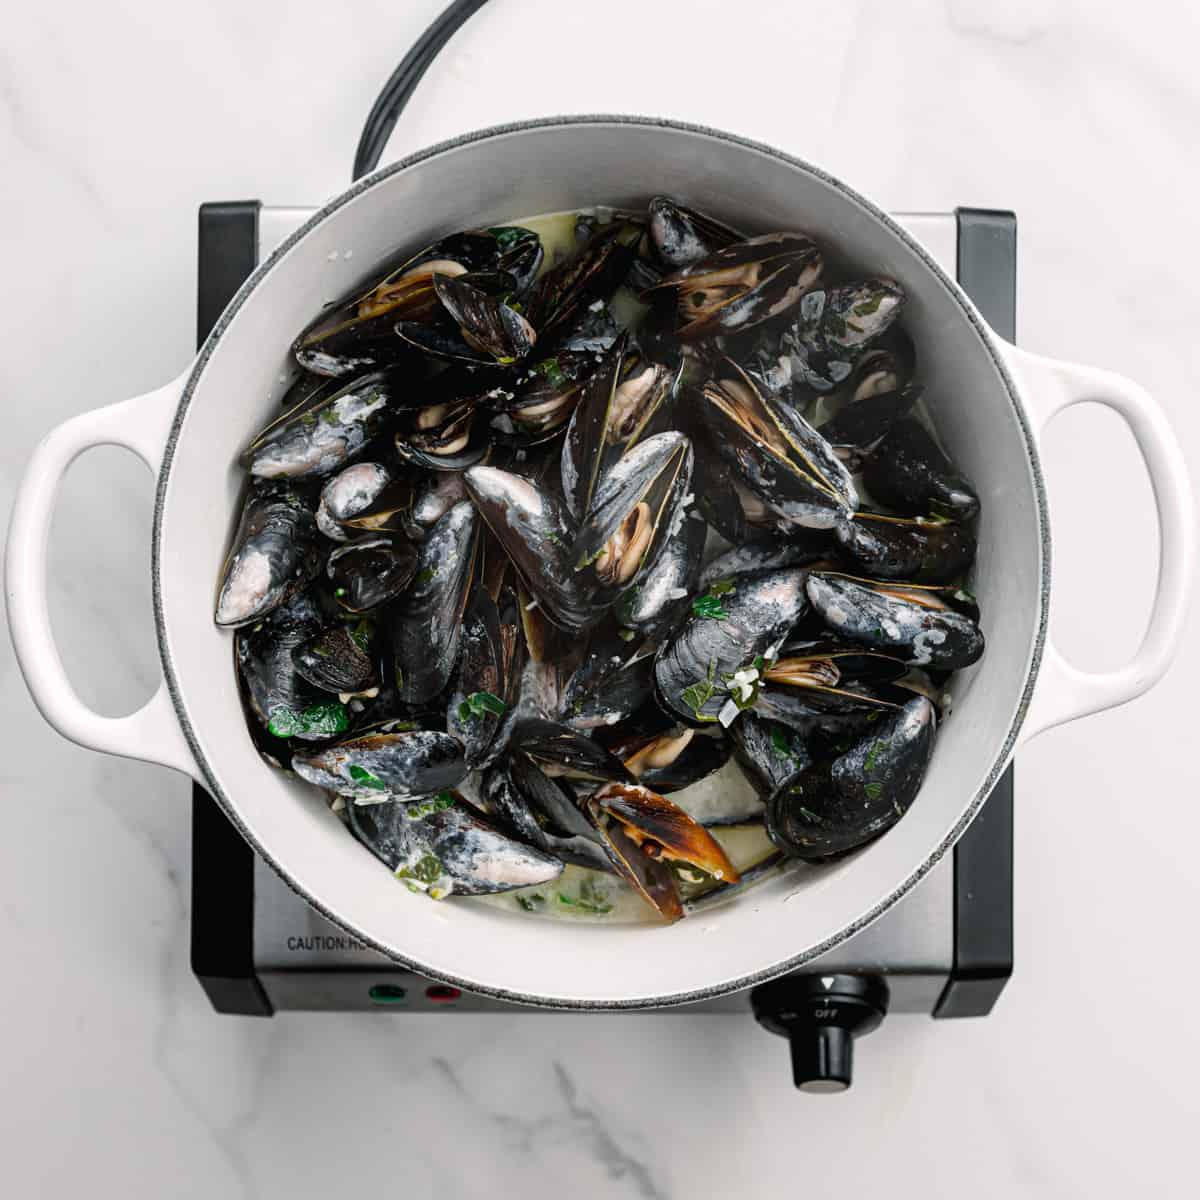 cooked mussels in white wine sauce.